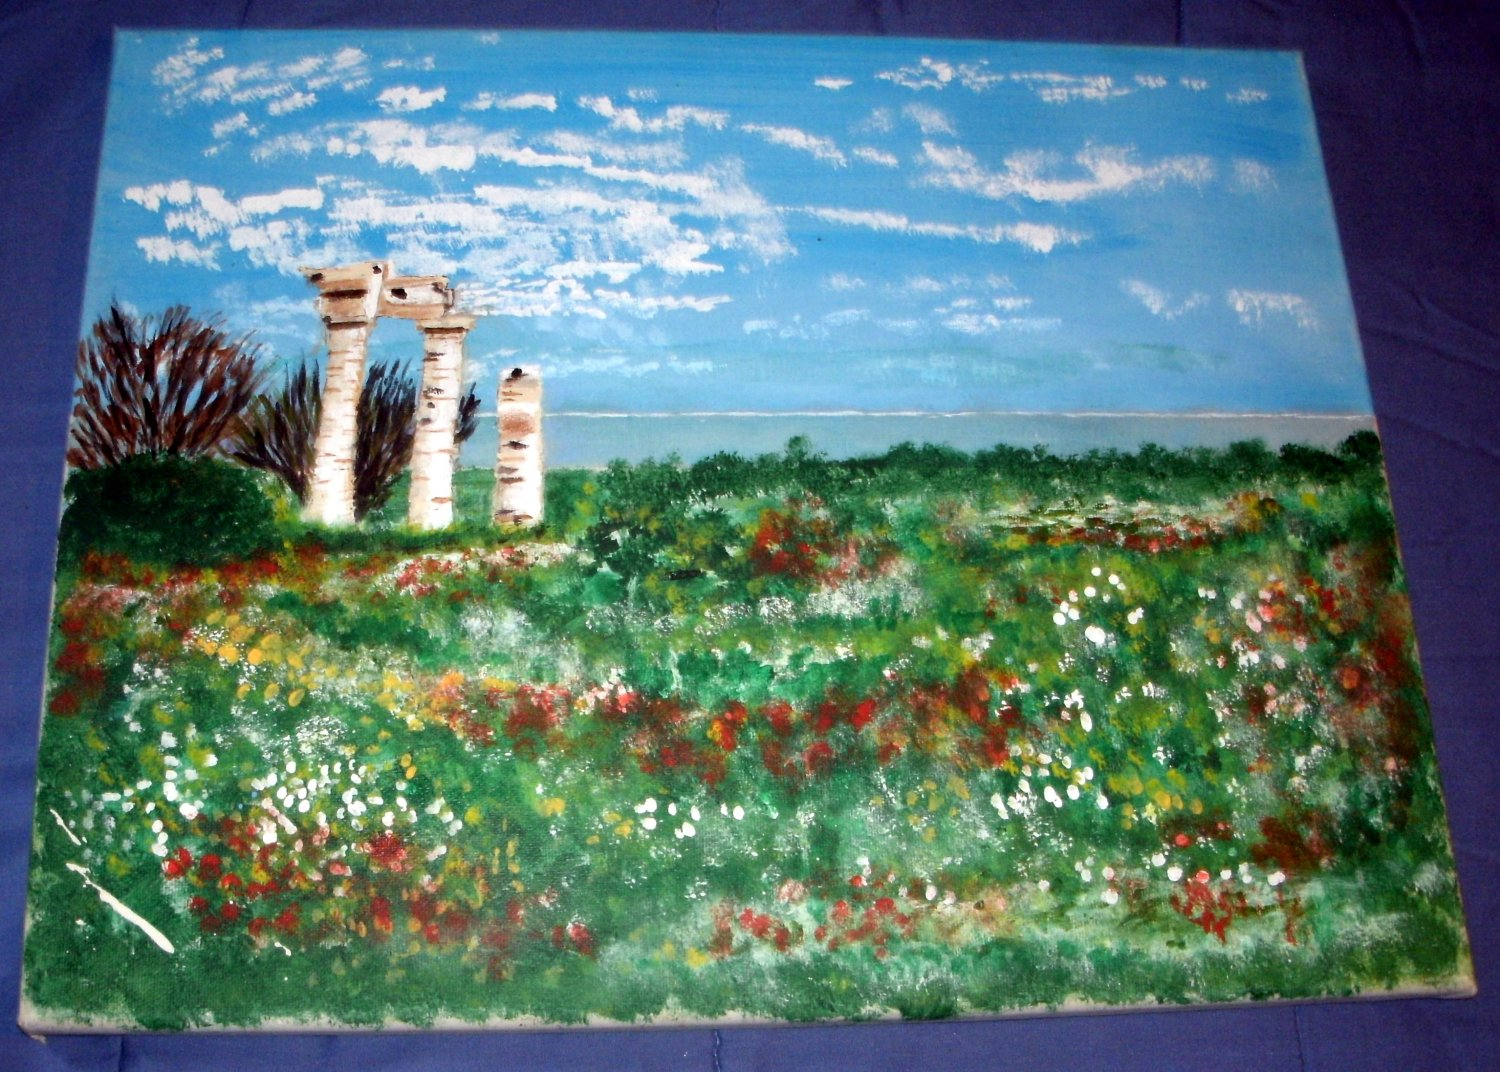 A SMALL ANCIENT RUIN IN ATHENS/ORIGINAL/ACRYLIC/